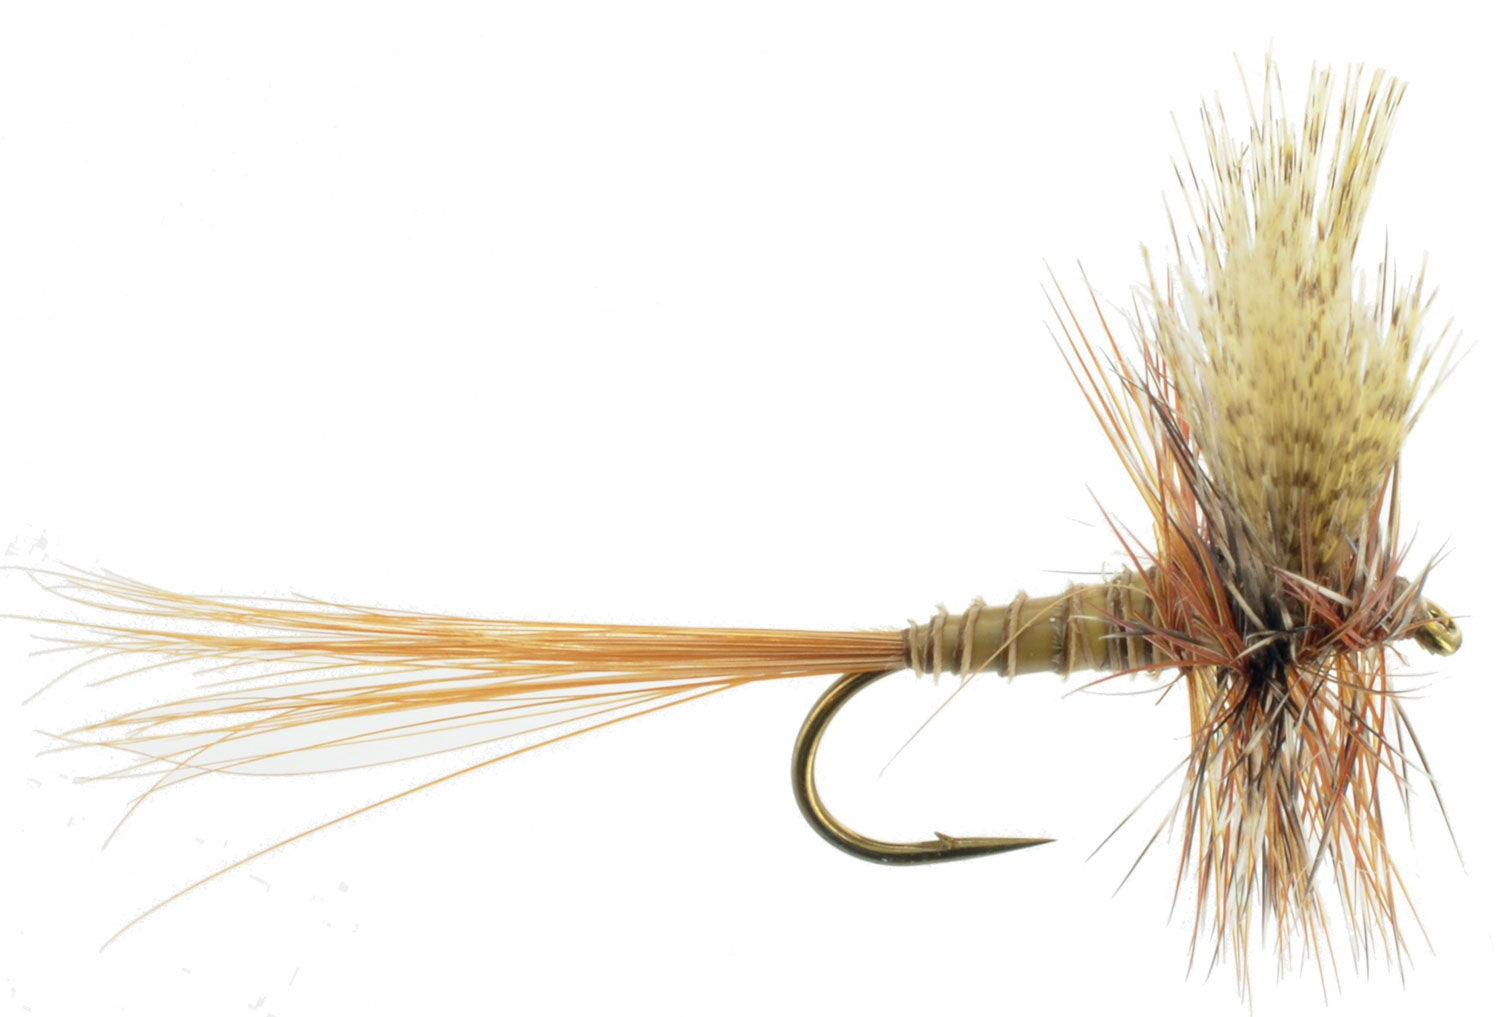 buy fly fishing flies for less at discountflies online fly shop, Fly Fishing Bait